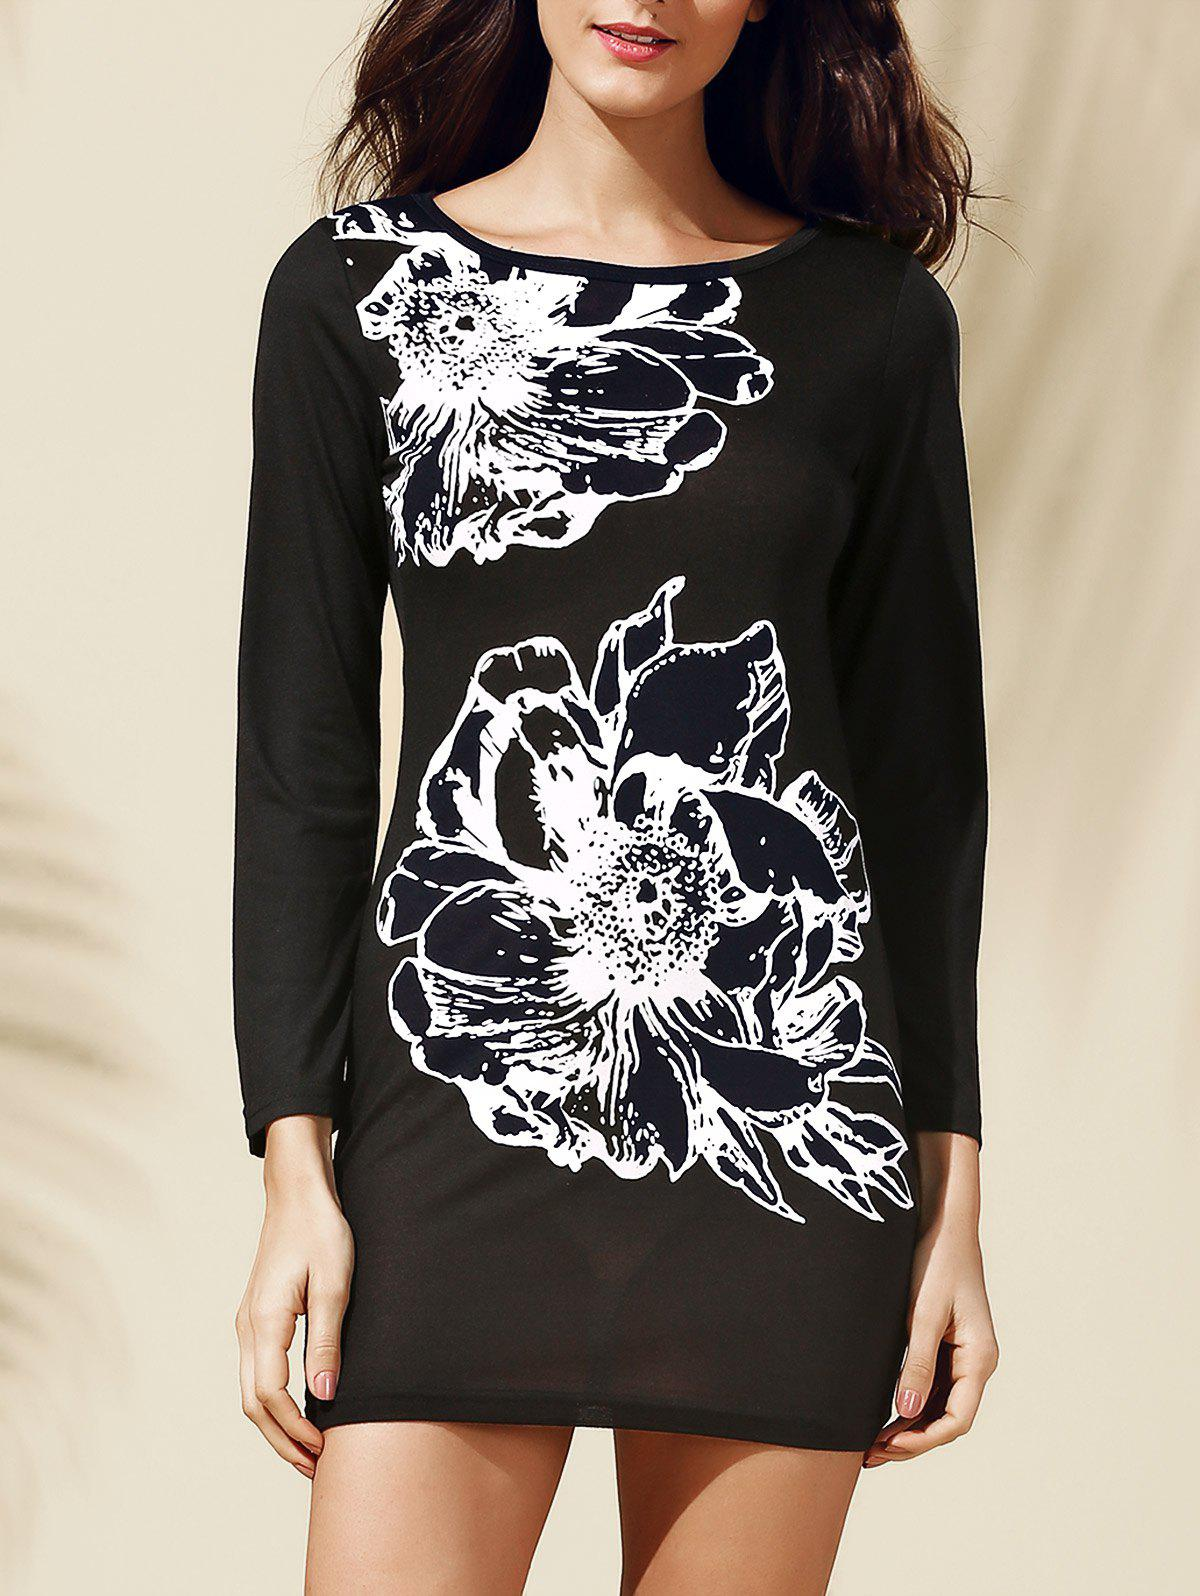 Chic Women's Jewel Neck Long Sleeves Floral Print T-Shirt Dress - BLACK M